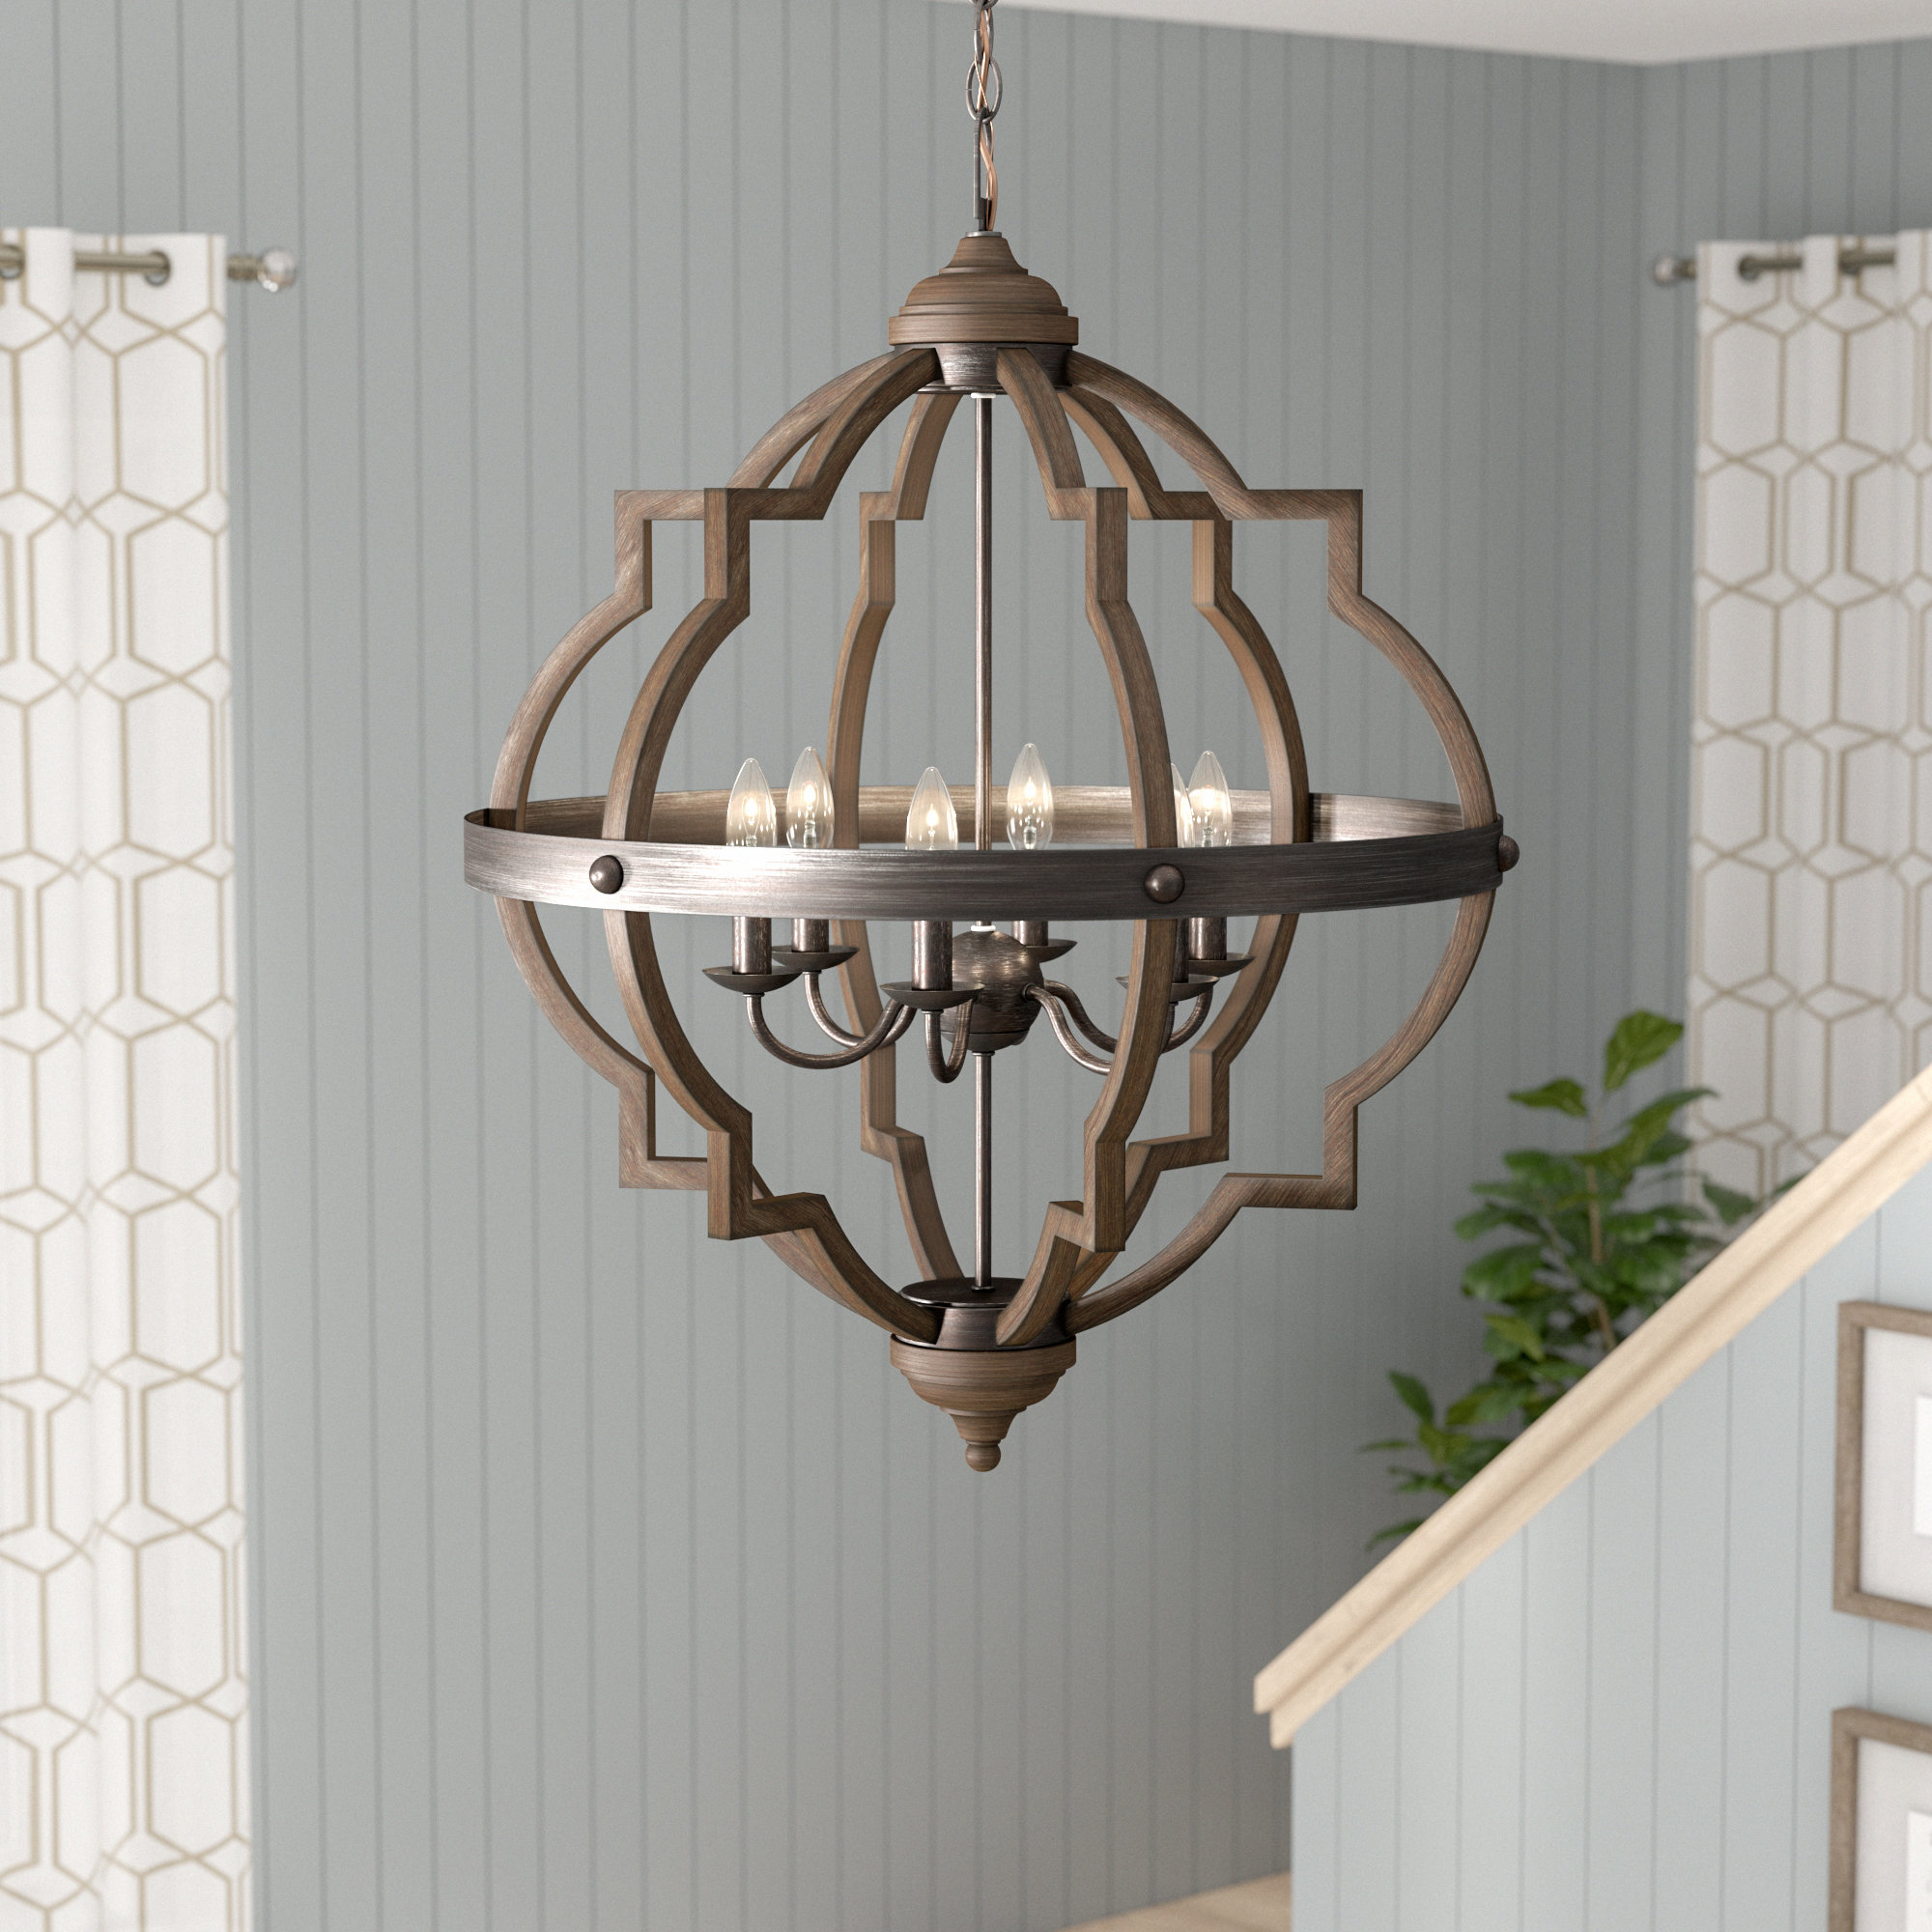 Bennington 6 Light Candle Style Chandelier With Bennington 4 Light Candle Style Chandeliers (View 4 of 30)